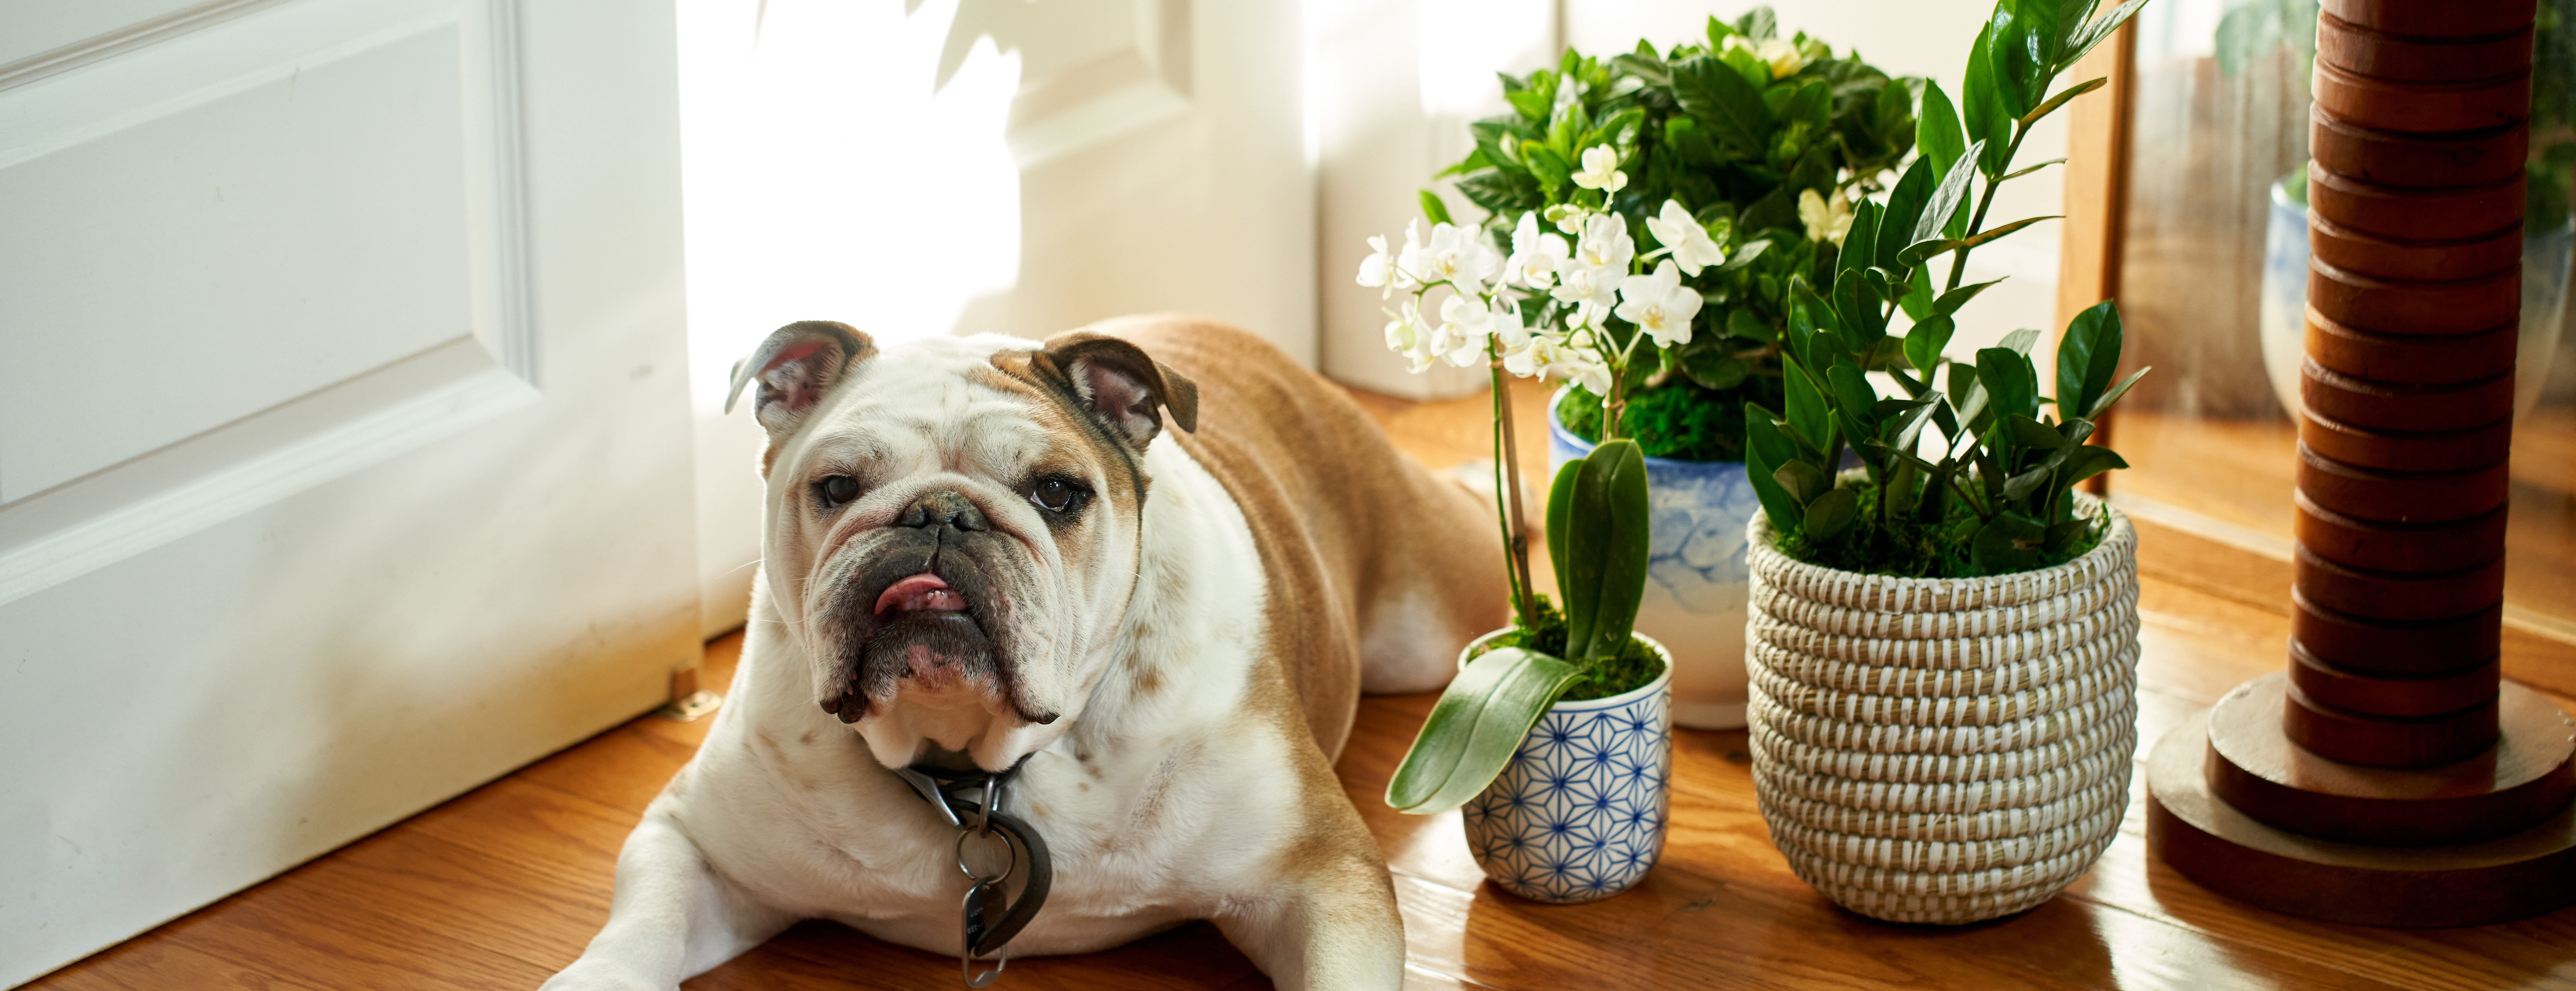 Dog laying on floor among various pet-friendly plants